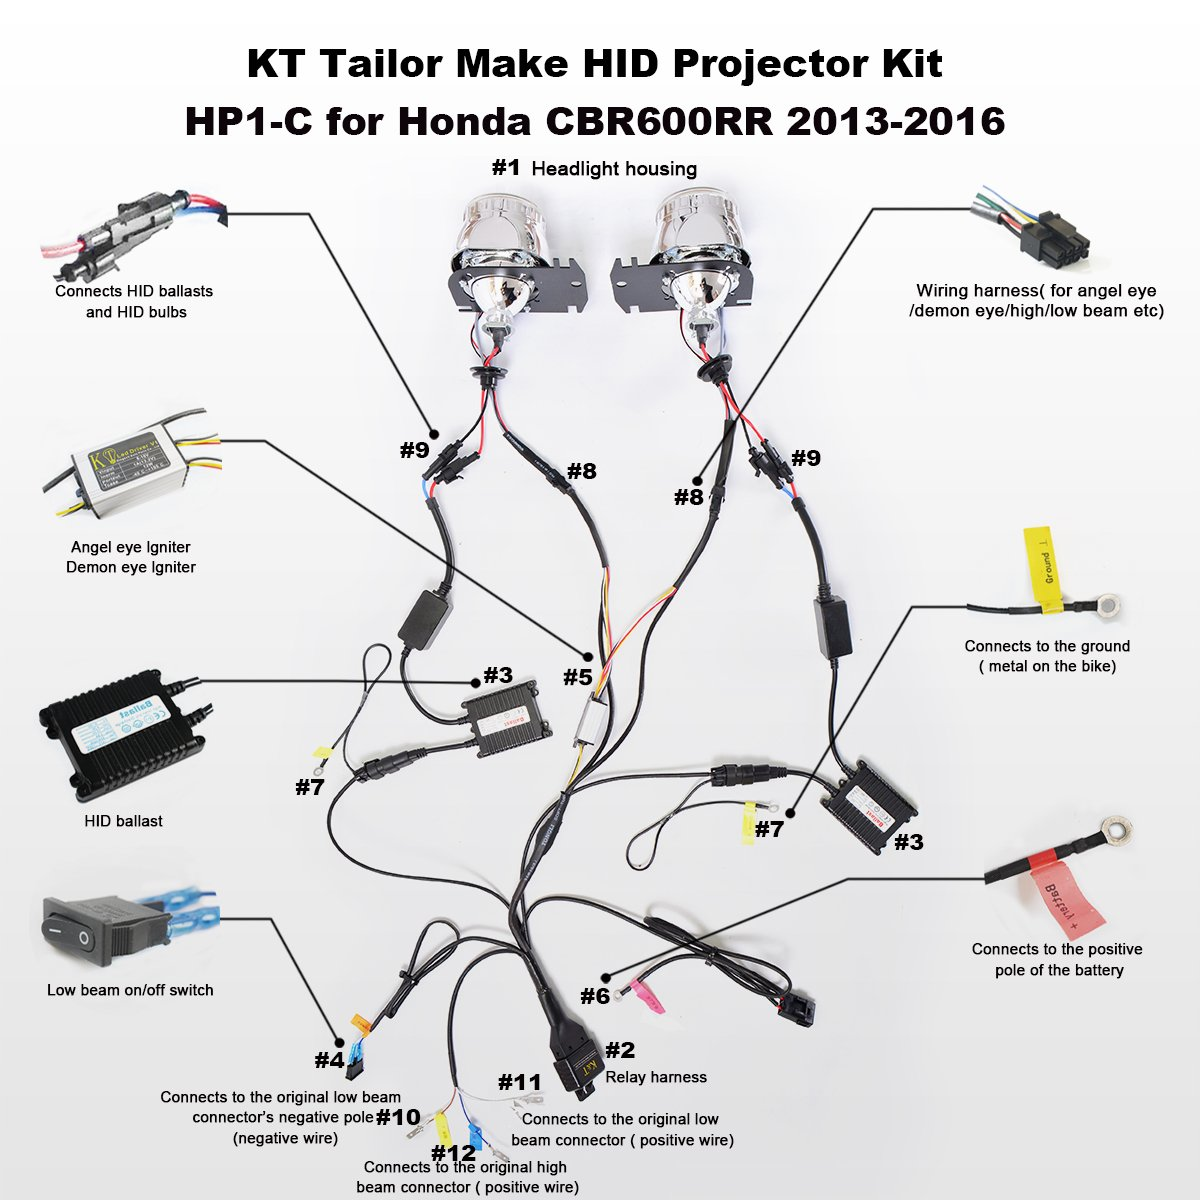 Kt Tailor Made Hid Projector Kit Hp1 C For Honda Eagle Eyes Headlights Wiring Diagram Cbr600rr 2013 2016 White Angel Eye Automotive